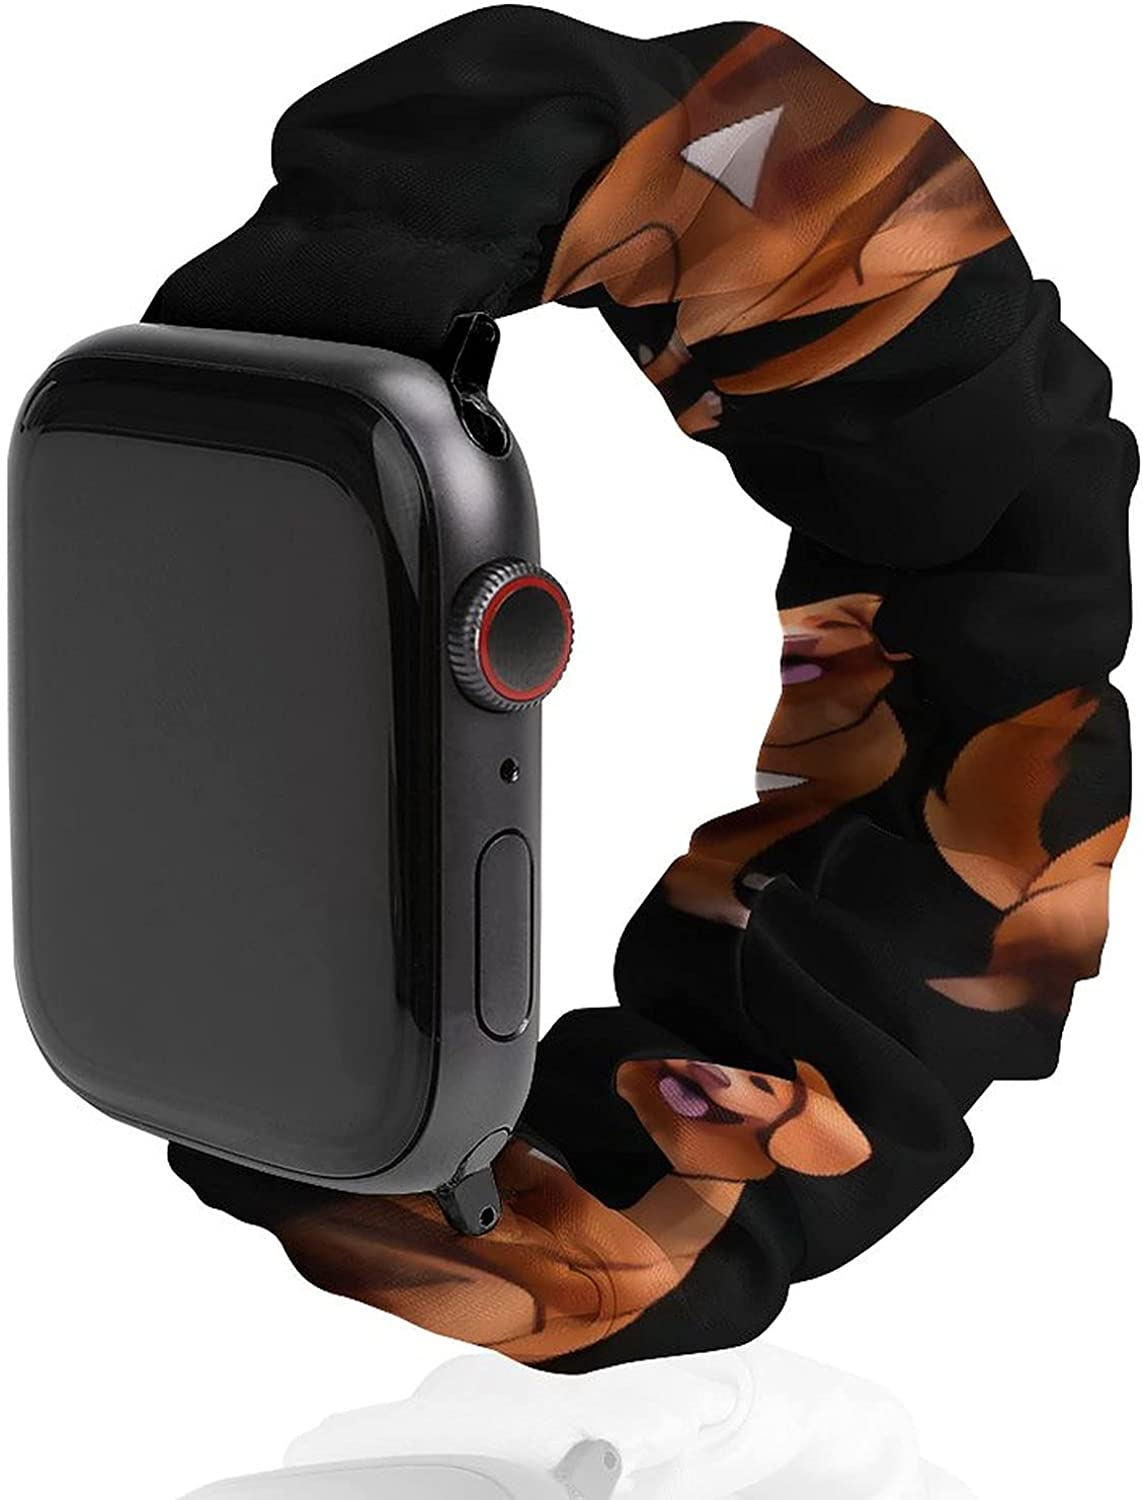 Cute Art Golden Retriever Dog Pattern Compatible with Apple Watch Band Scrunchies 38mm 40mm 42mm 44mm Cloth Soft Pattern Printed Fabric Bracelet Women Rose Gold IWatch Cute Elastic Scrunchy Bands for